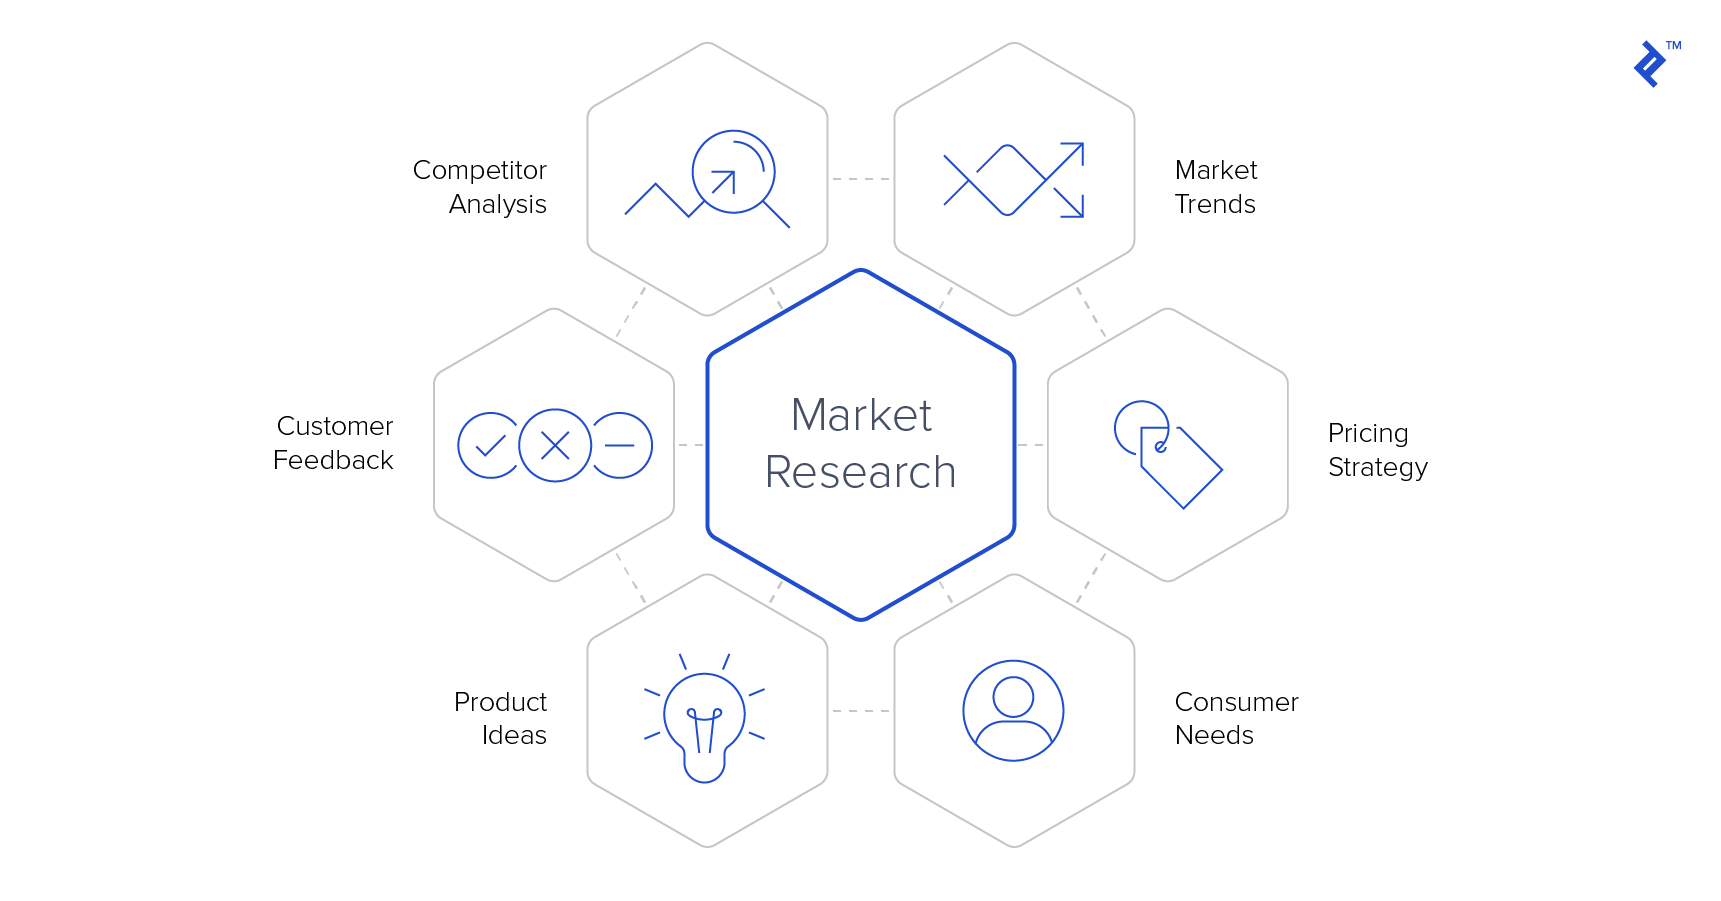 A graphic representation of the major elements of market research